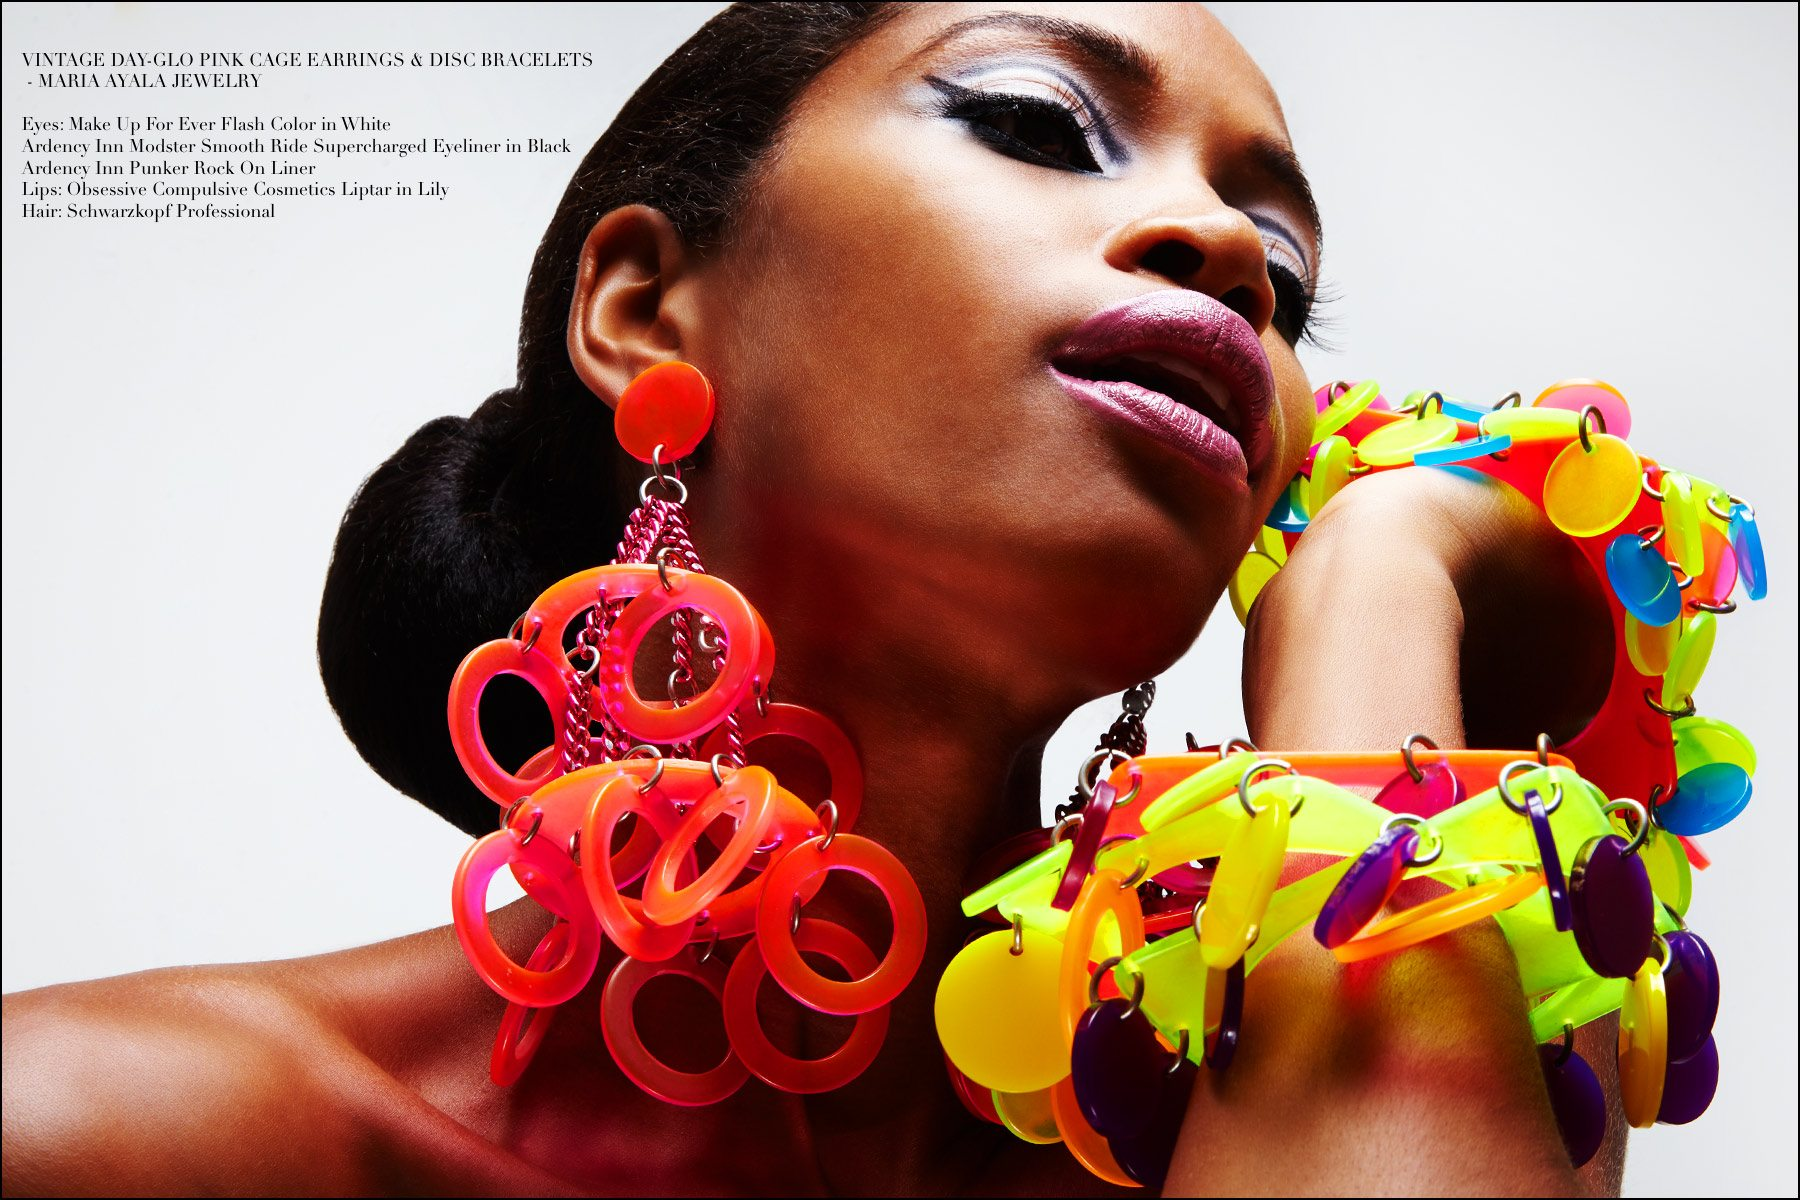 Bold and dramatic vintage plastic jewelry designed by Maria Ayala. Photographed by Alexander Thompson on model Christina Anderson-McDonald for Ponyboy magazine NY.